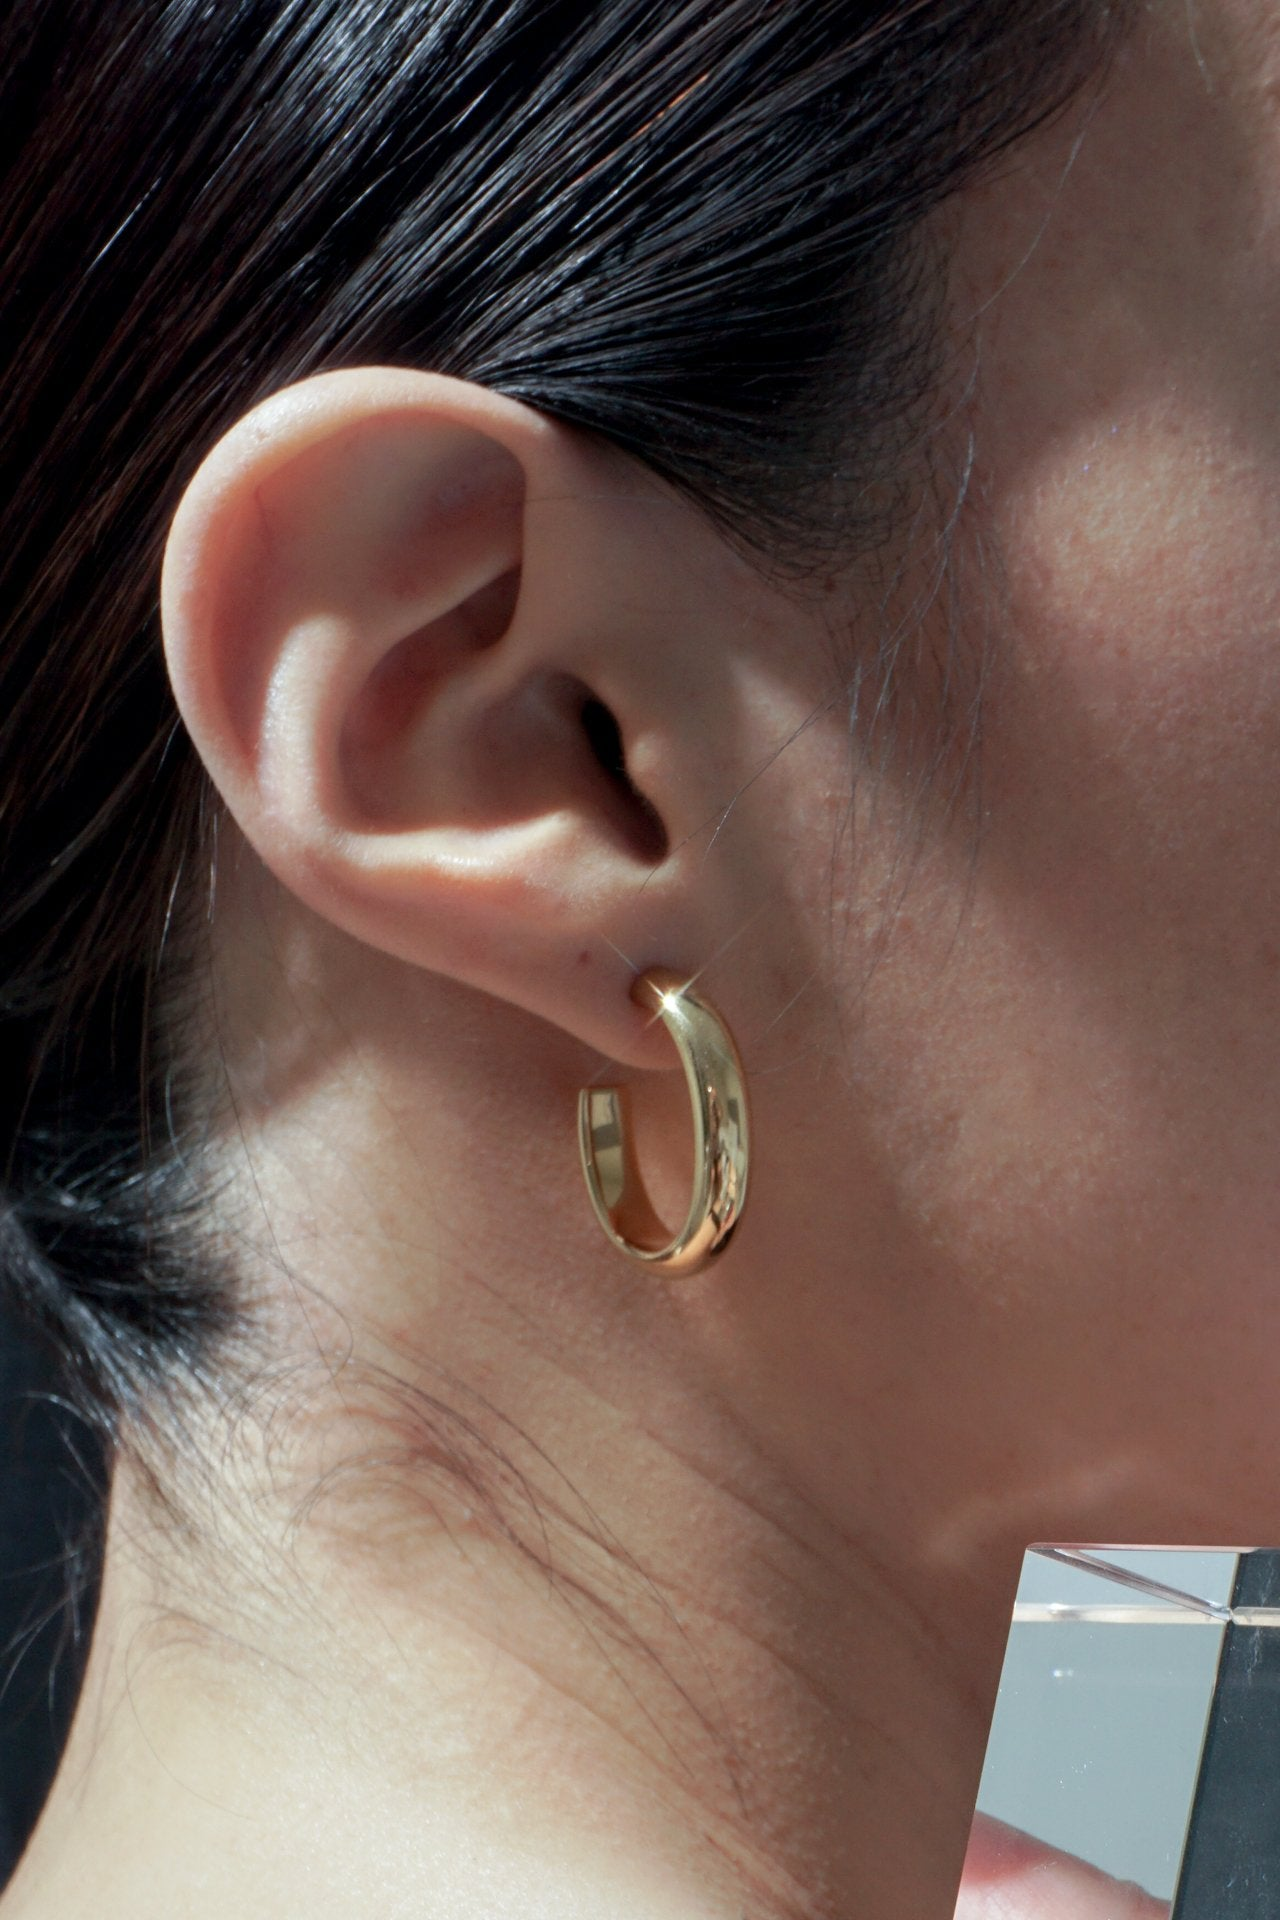 Earrings - Timebend Oval Hoops - Gold